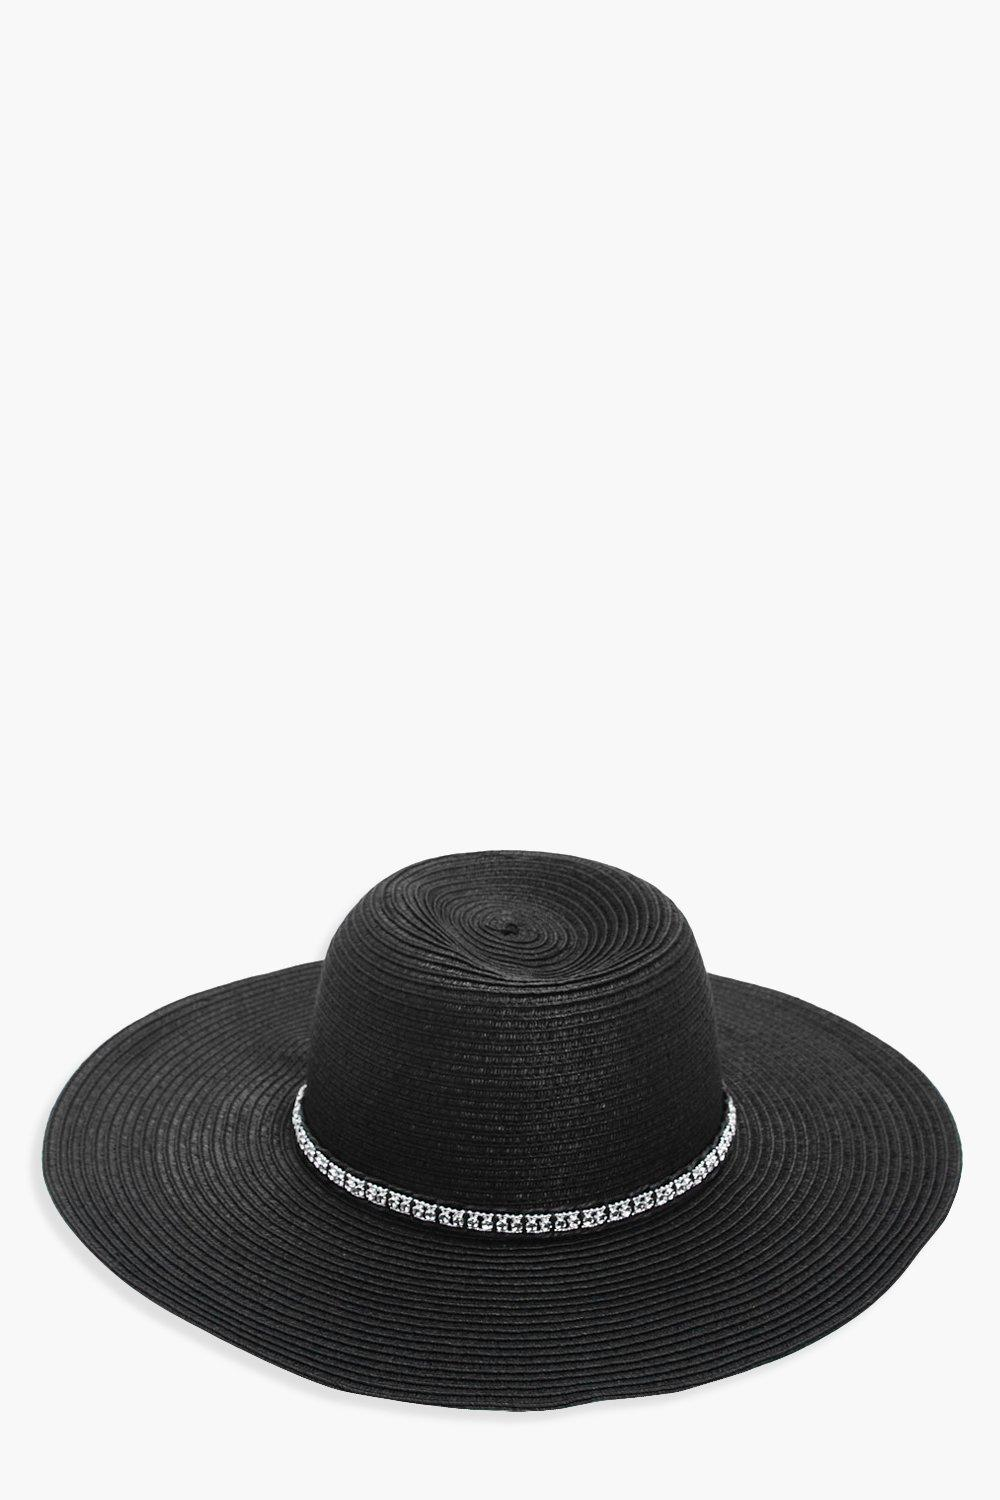 Diamante Trim Floppy Hat - black - Melissa Diamant